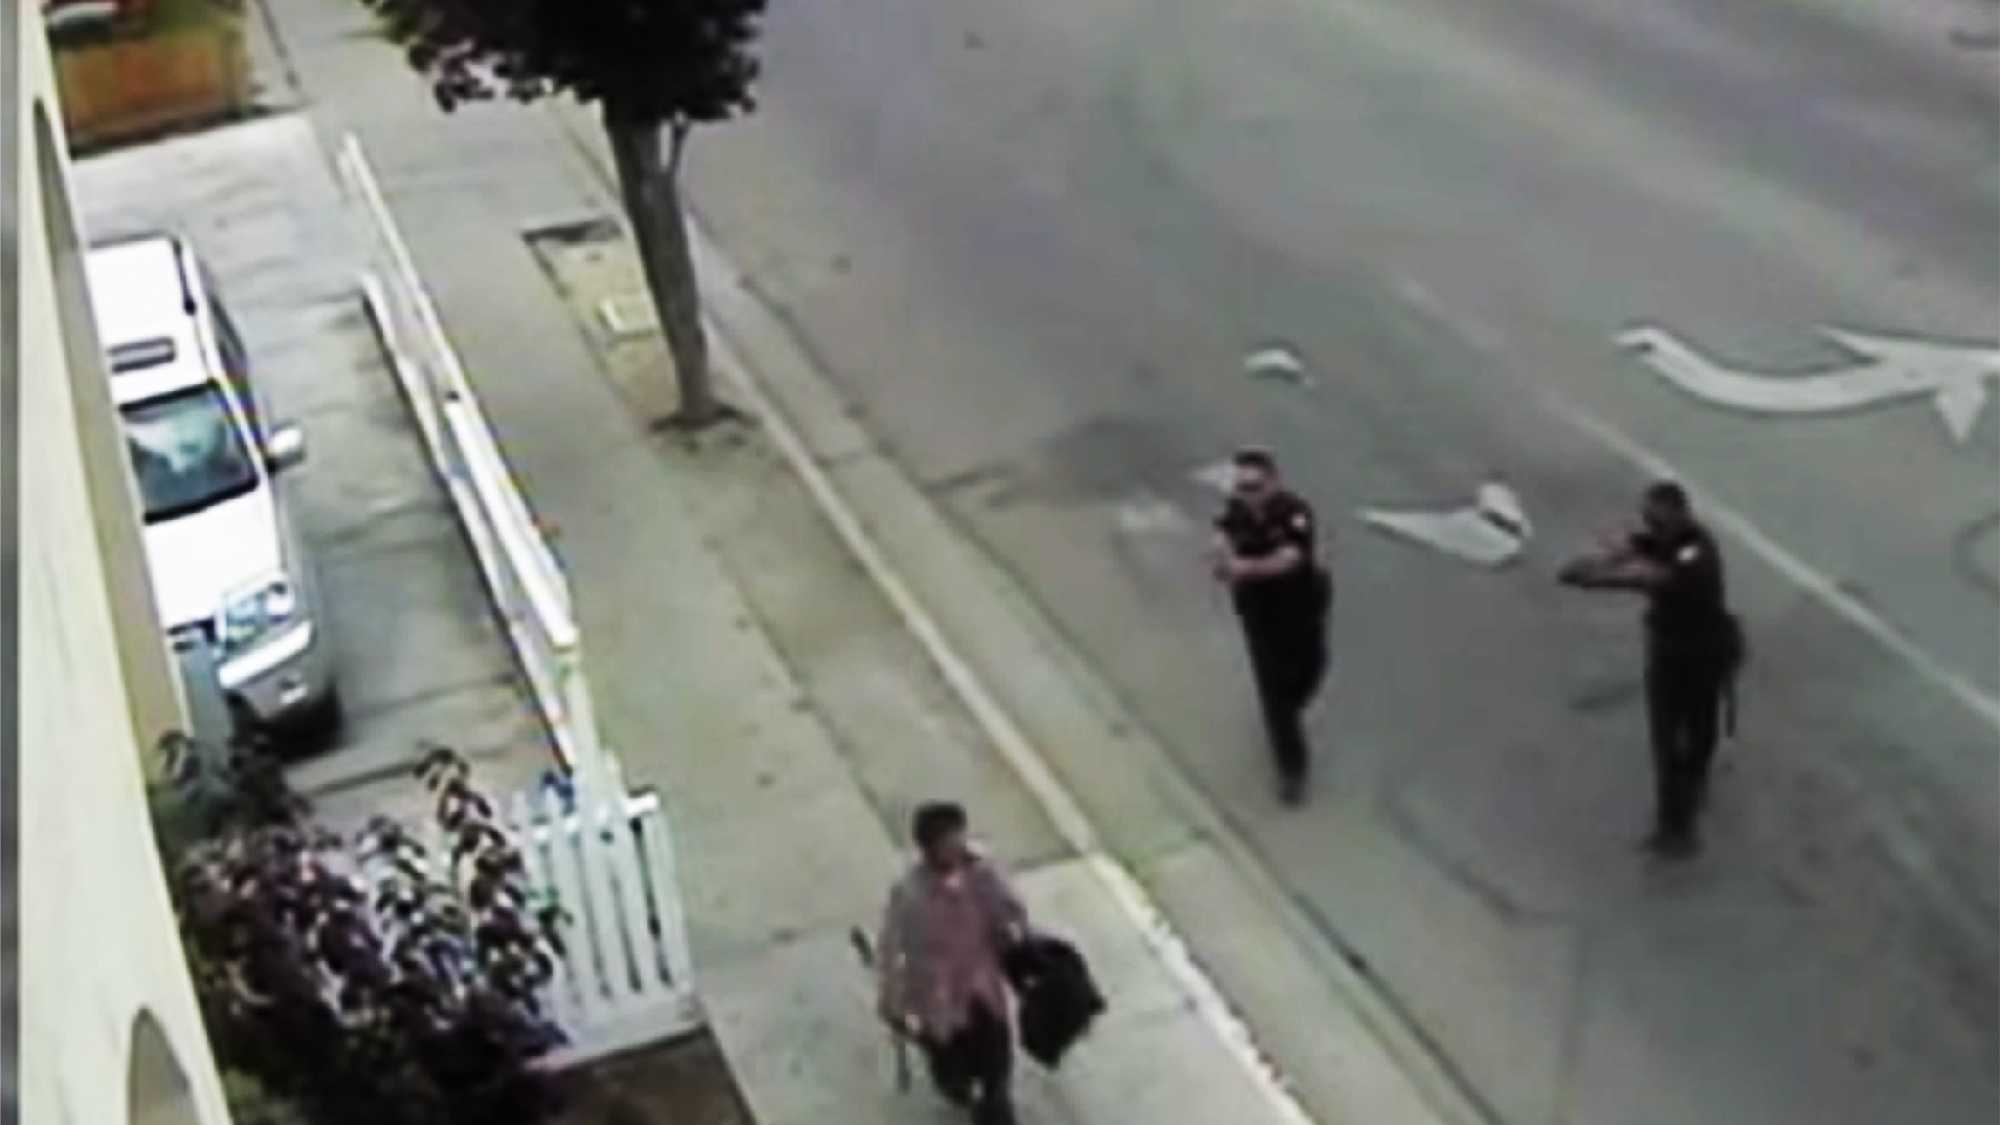 Carlos Mejia, left, is seen seconds before two officers, right, shot and killed him on May 20, 2014.